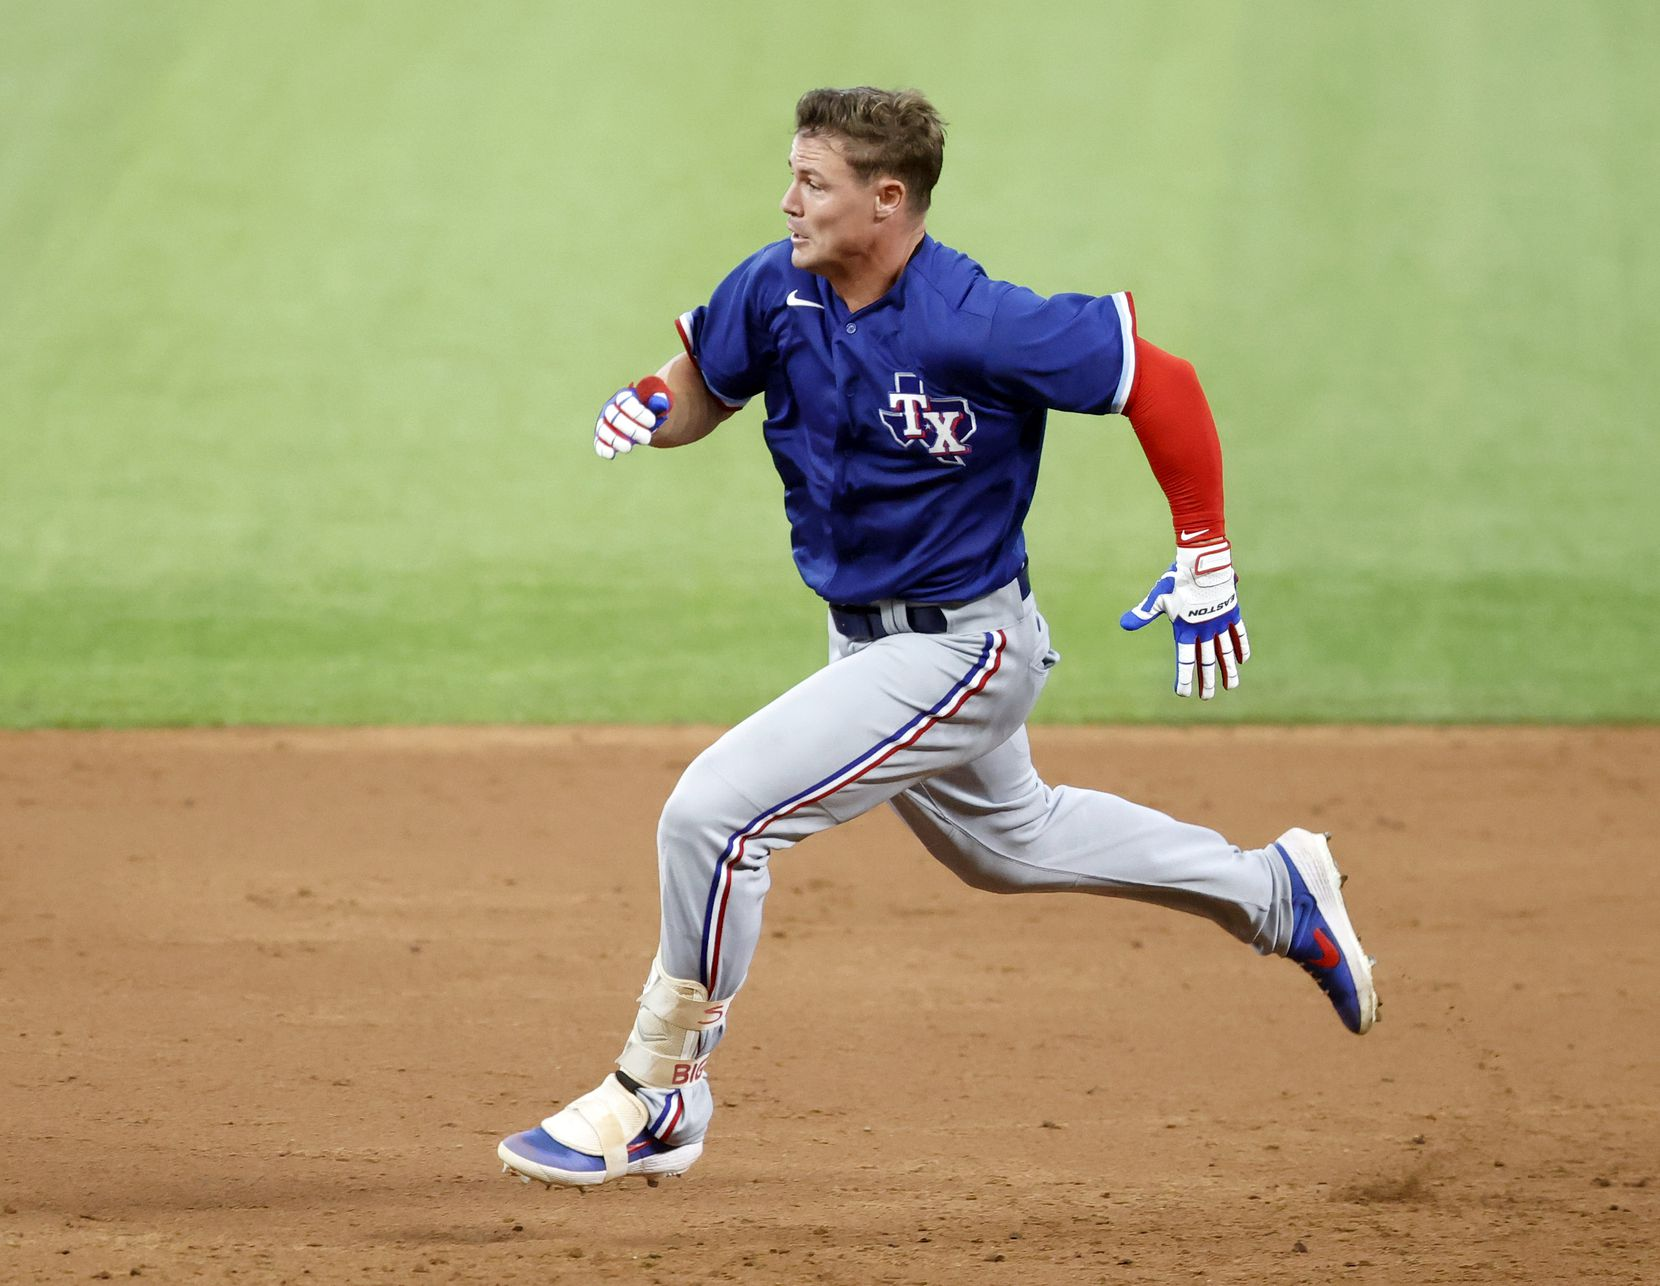 Texas Rangers outfielder Scott Heineman races to third on a triple during a simulated Summer Camp game at Globe Life Field in Arlington, Texas, Thursday, July 9, 2020. (Tom Fox/The Dallas Morning News)